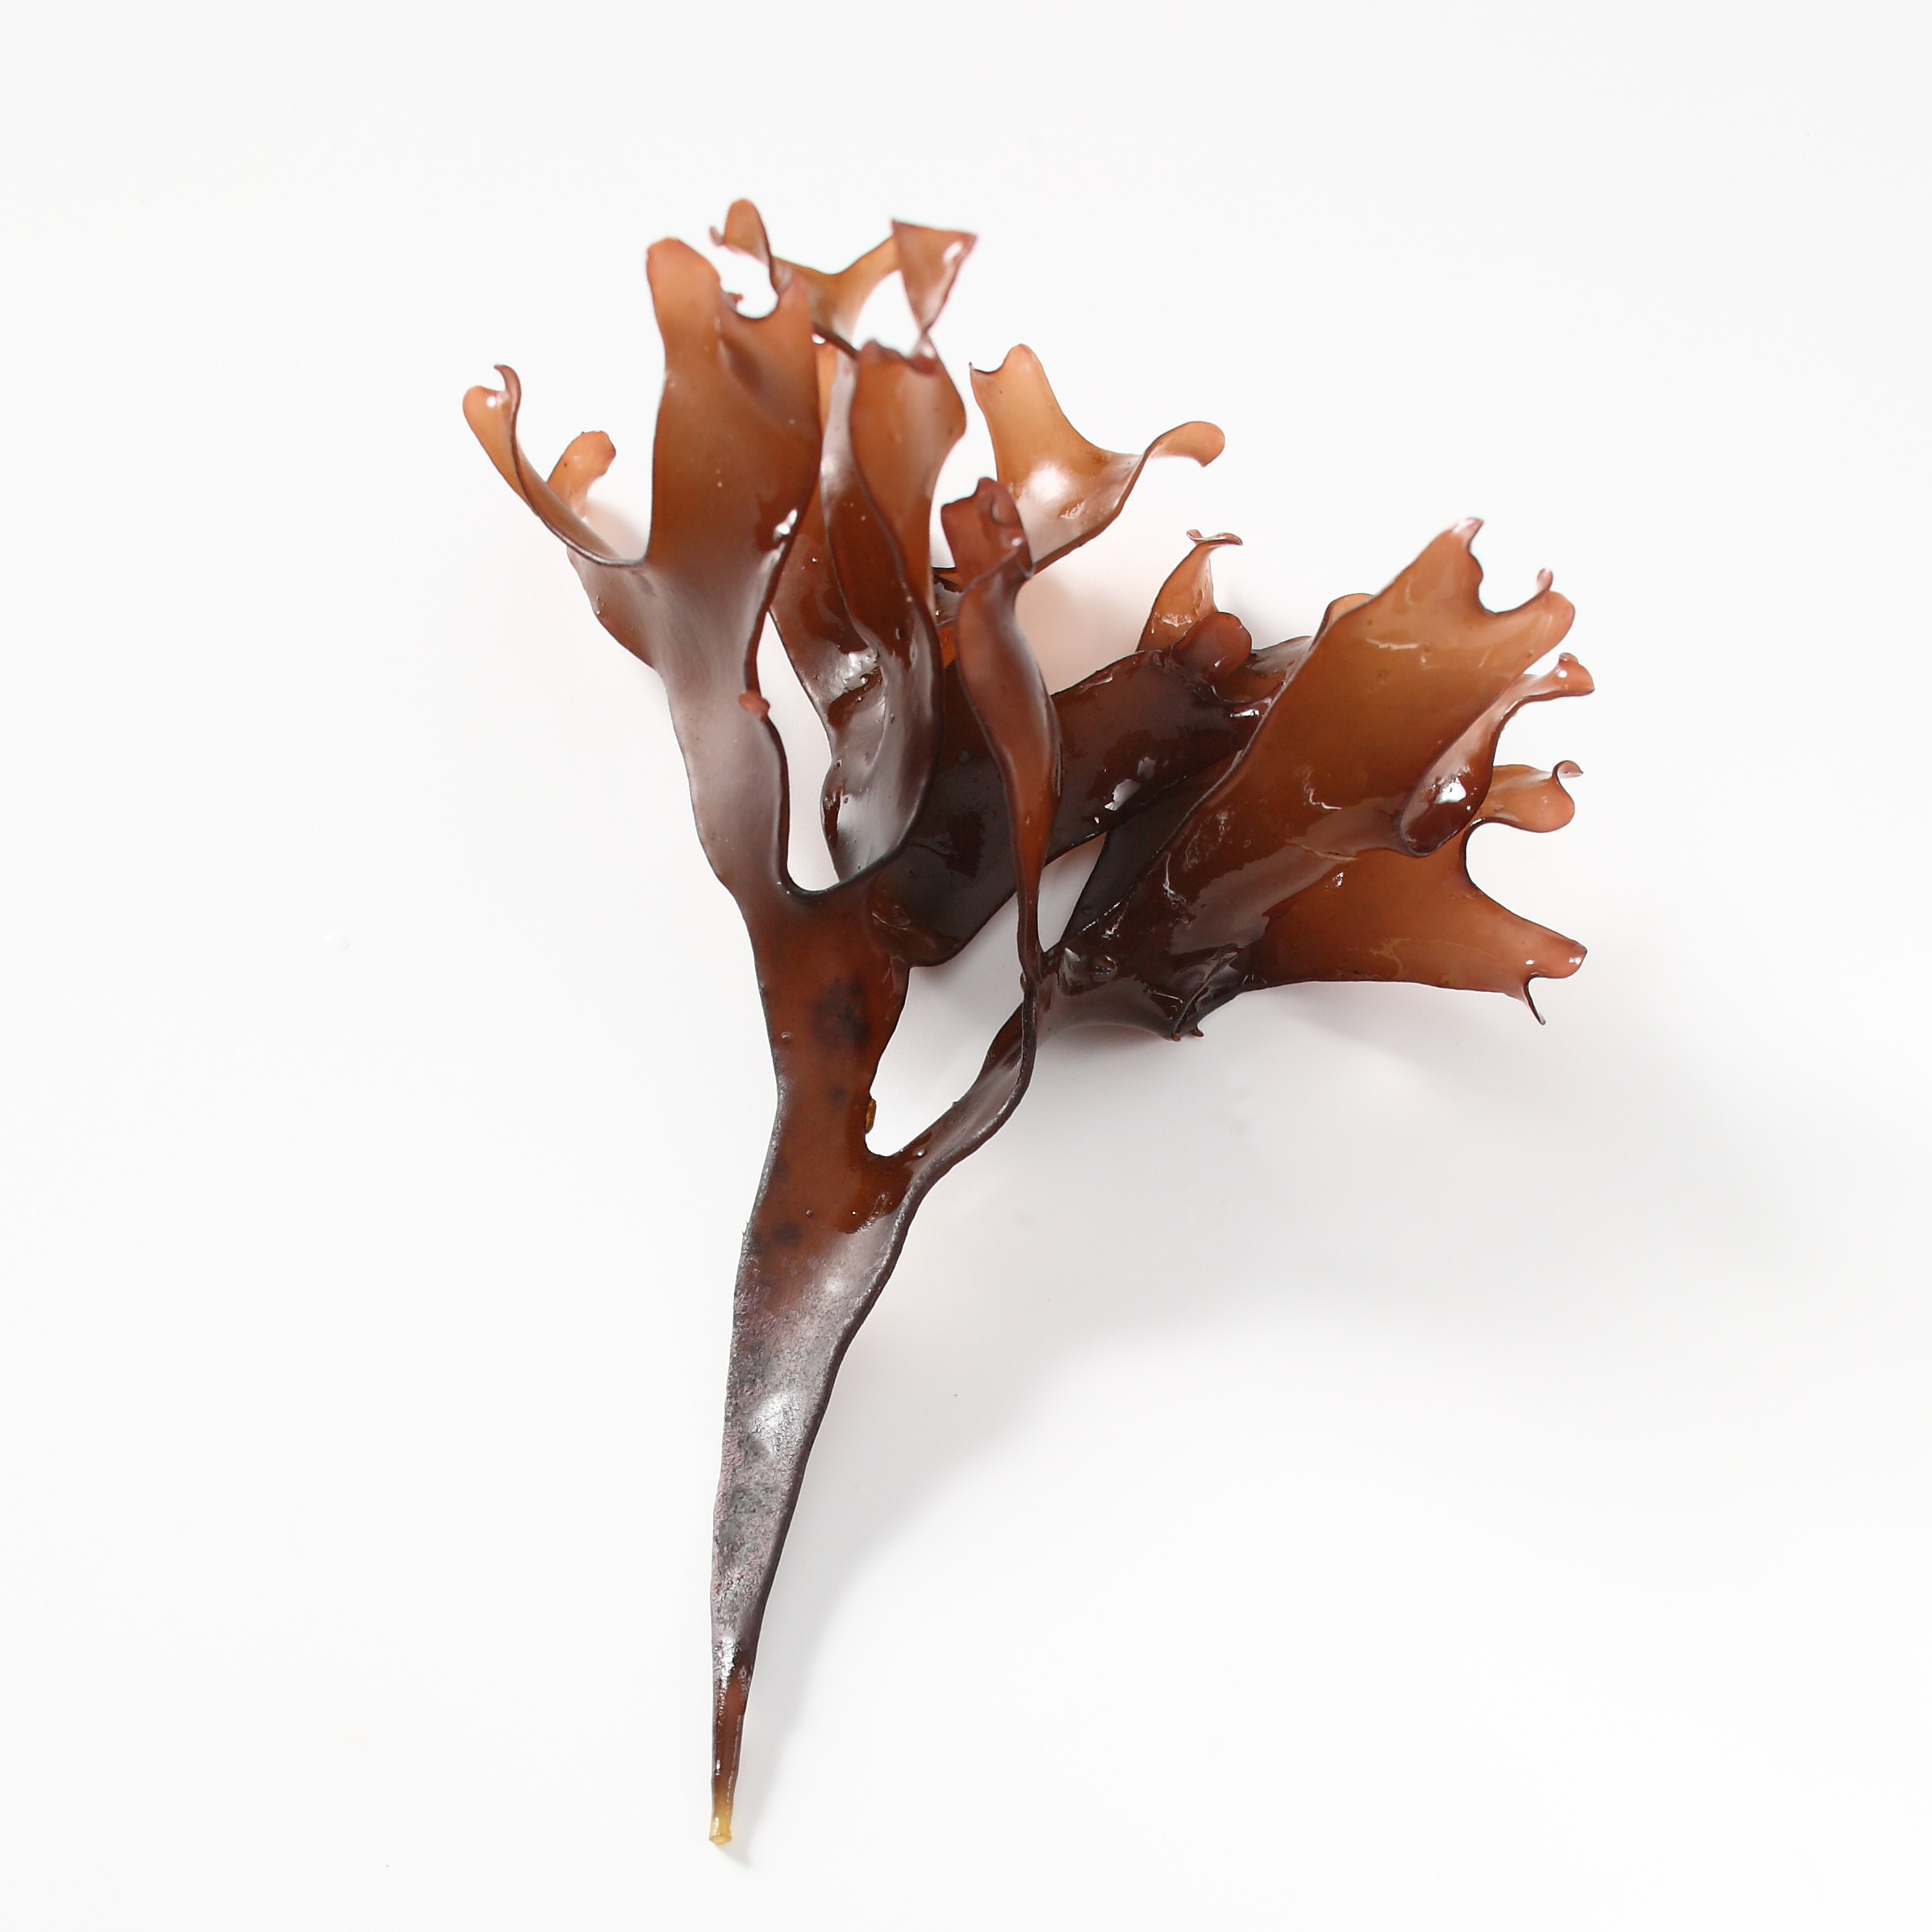 A brown Macroalgae